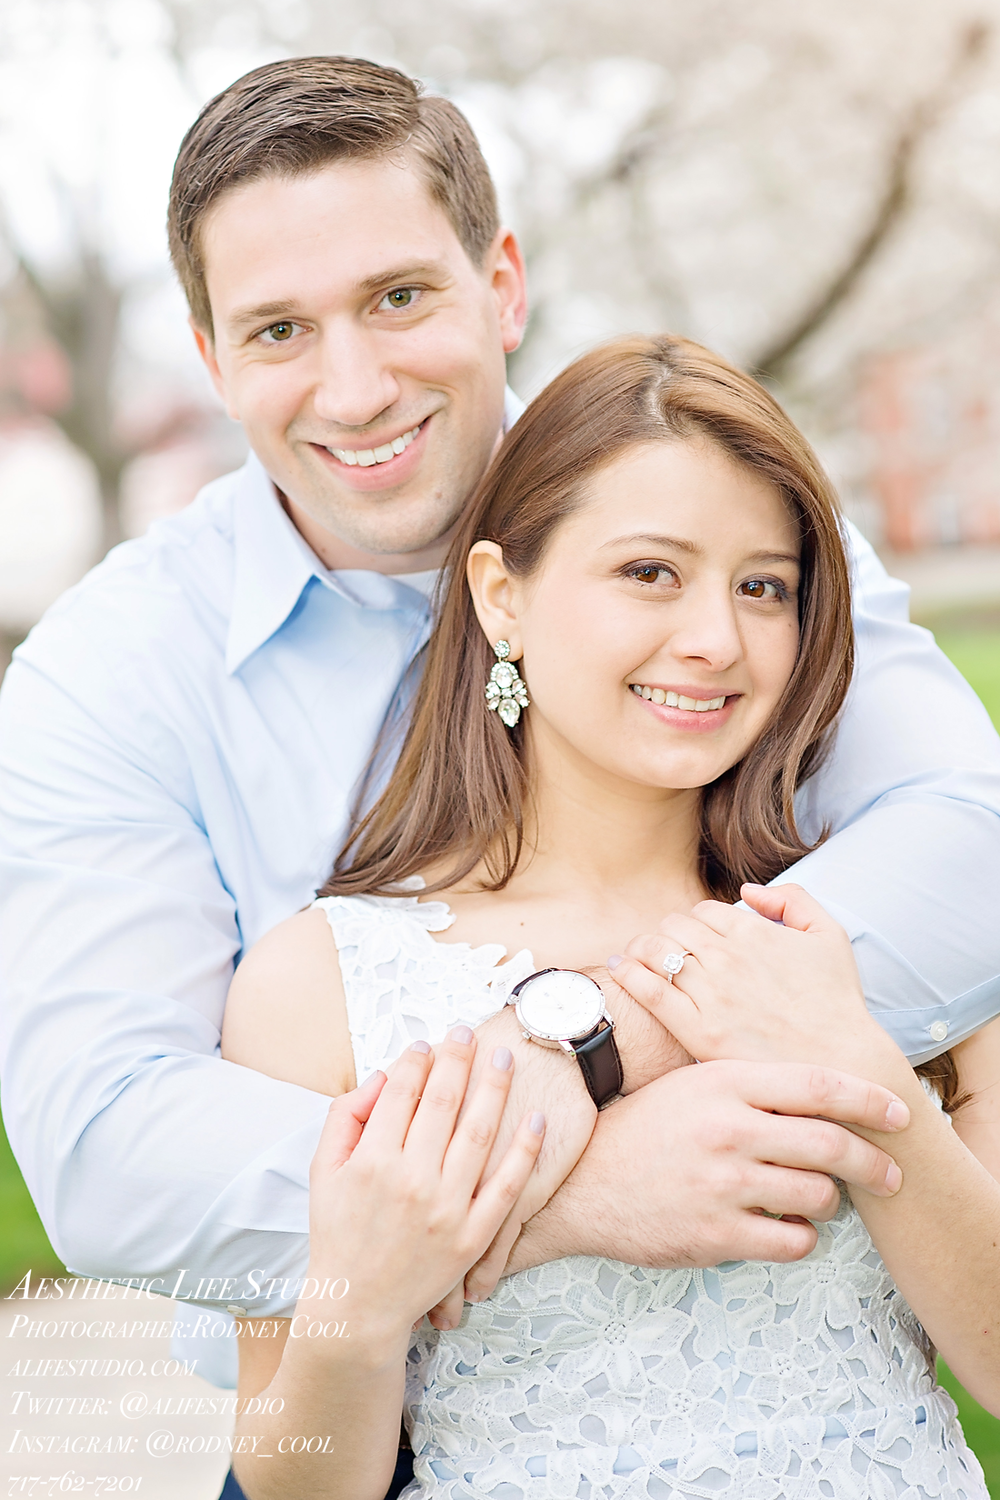 frederick_md_engagement_session_003.png